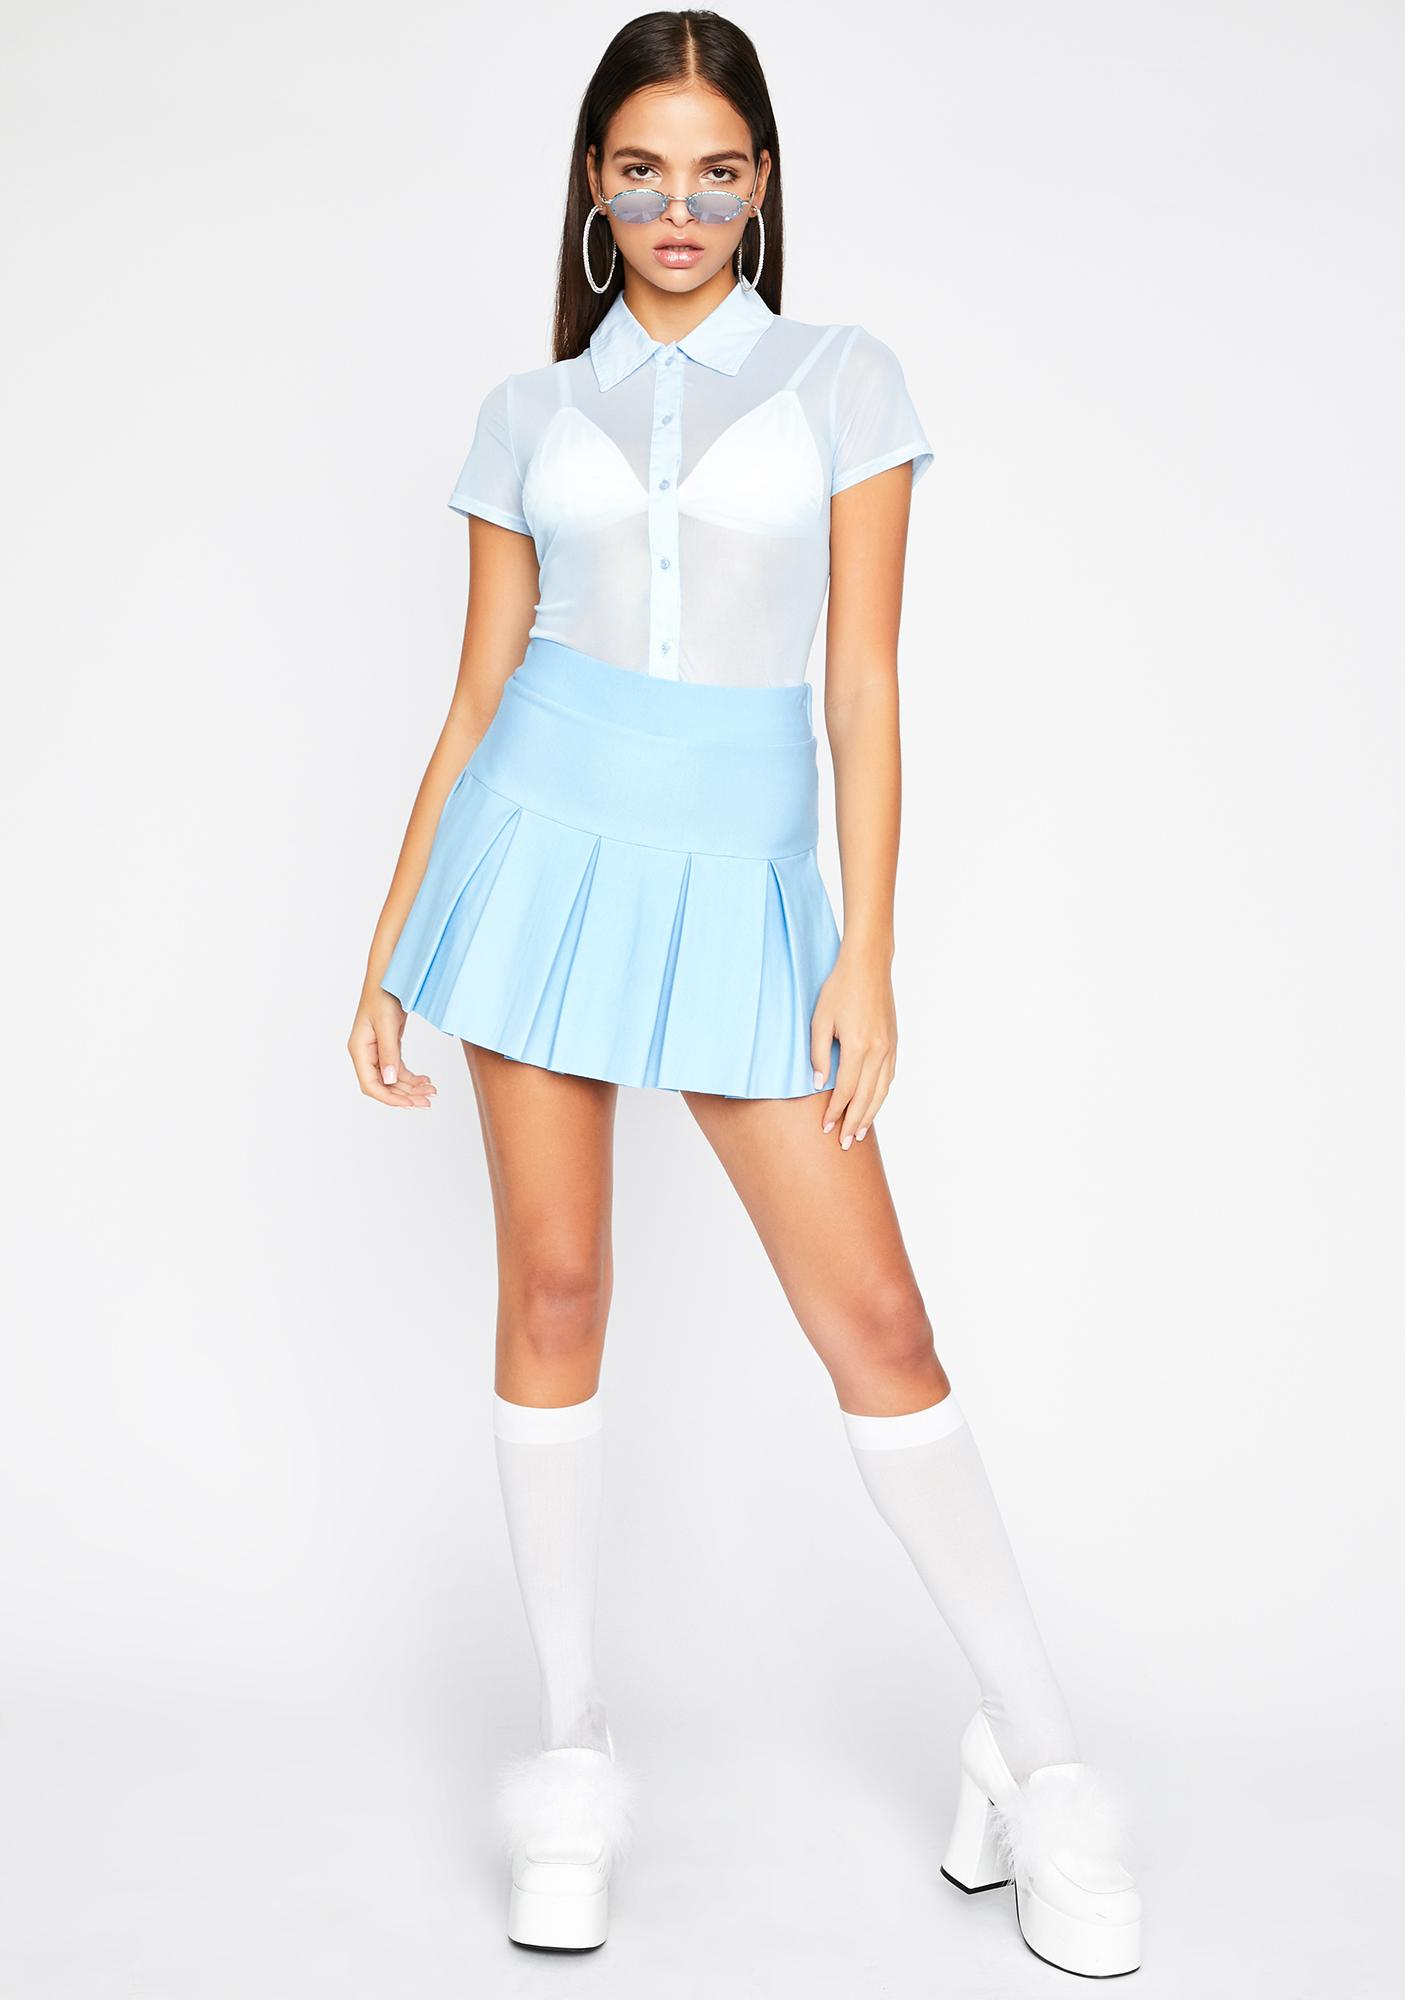 Chill Wicked Scholar Pleated Mini Skirt